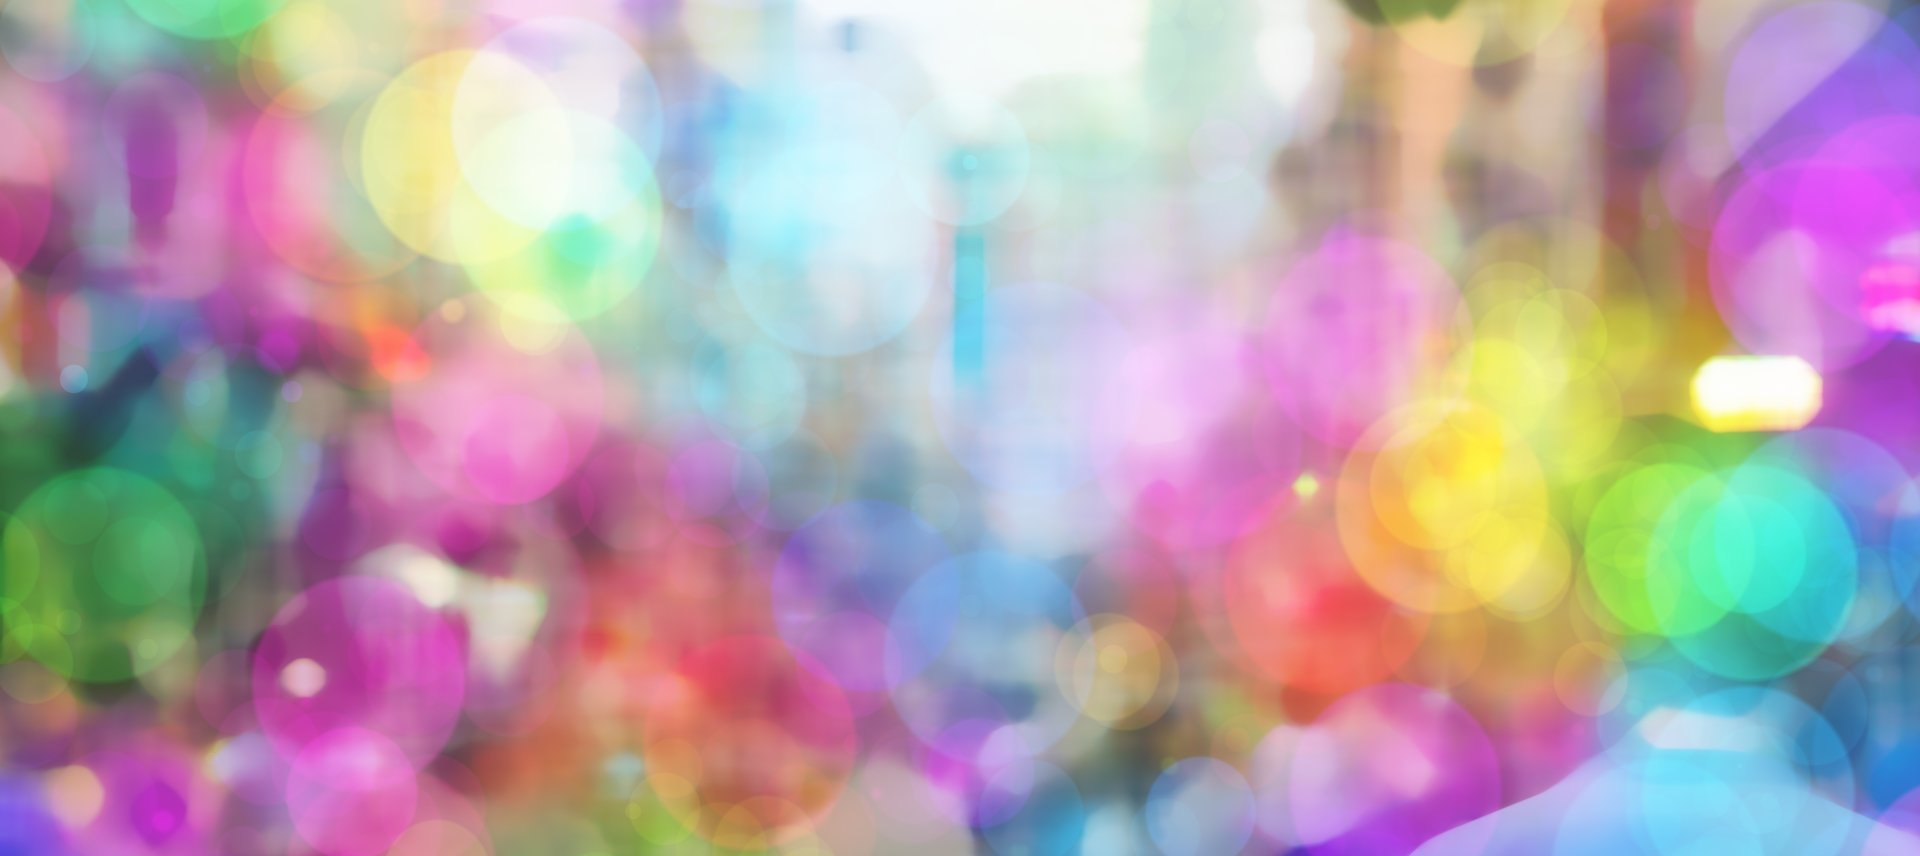 Artistic - Bokeh  Abstract Colors Colorful Circle Light Wallpaper